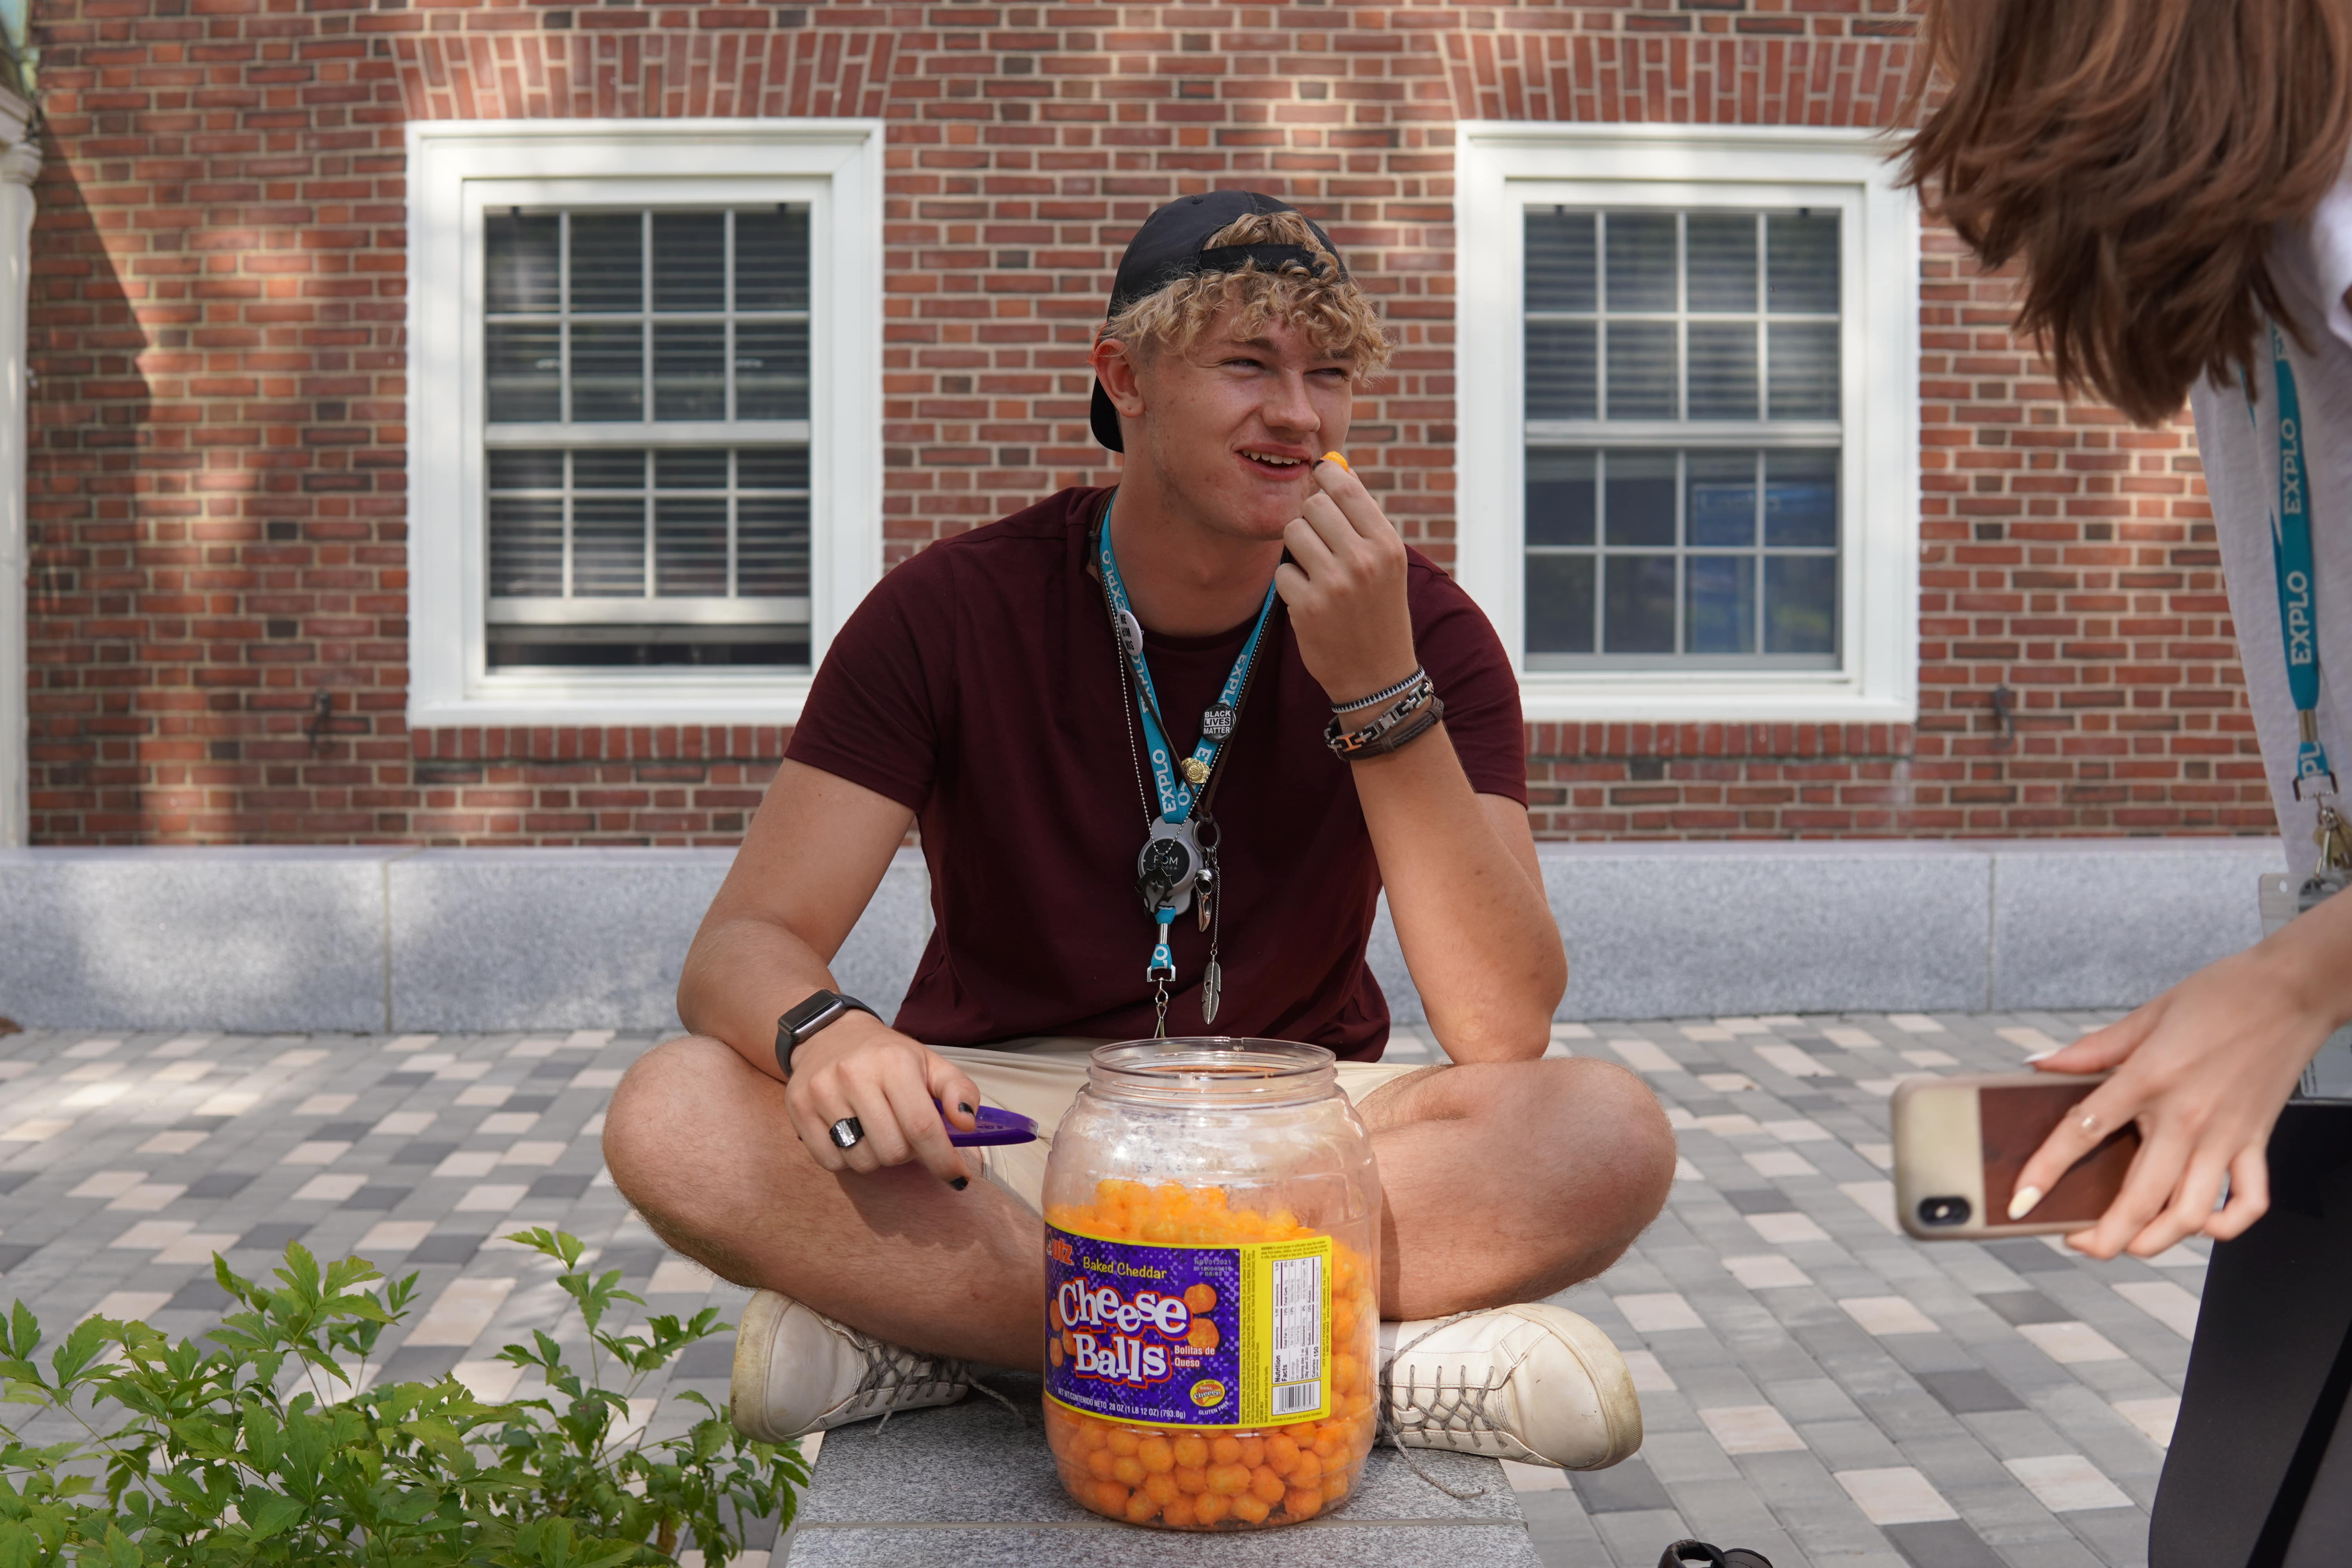 A student sits crosslegged with a large jar of cheese balls in front of them as they snack on them.